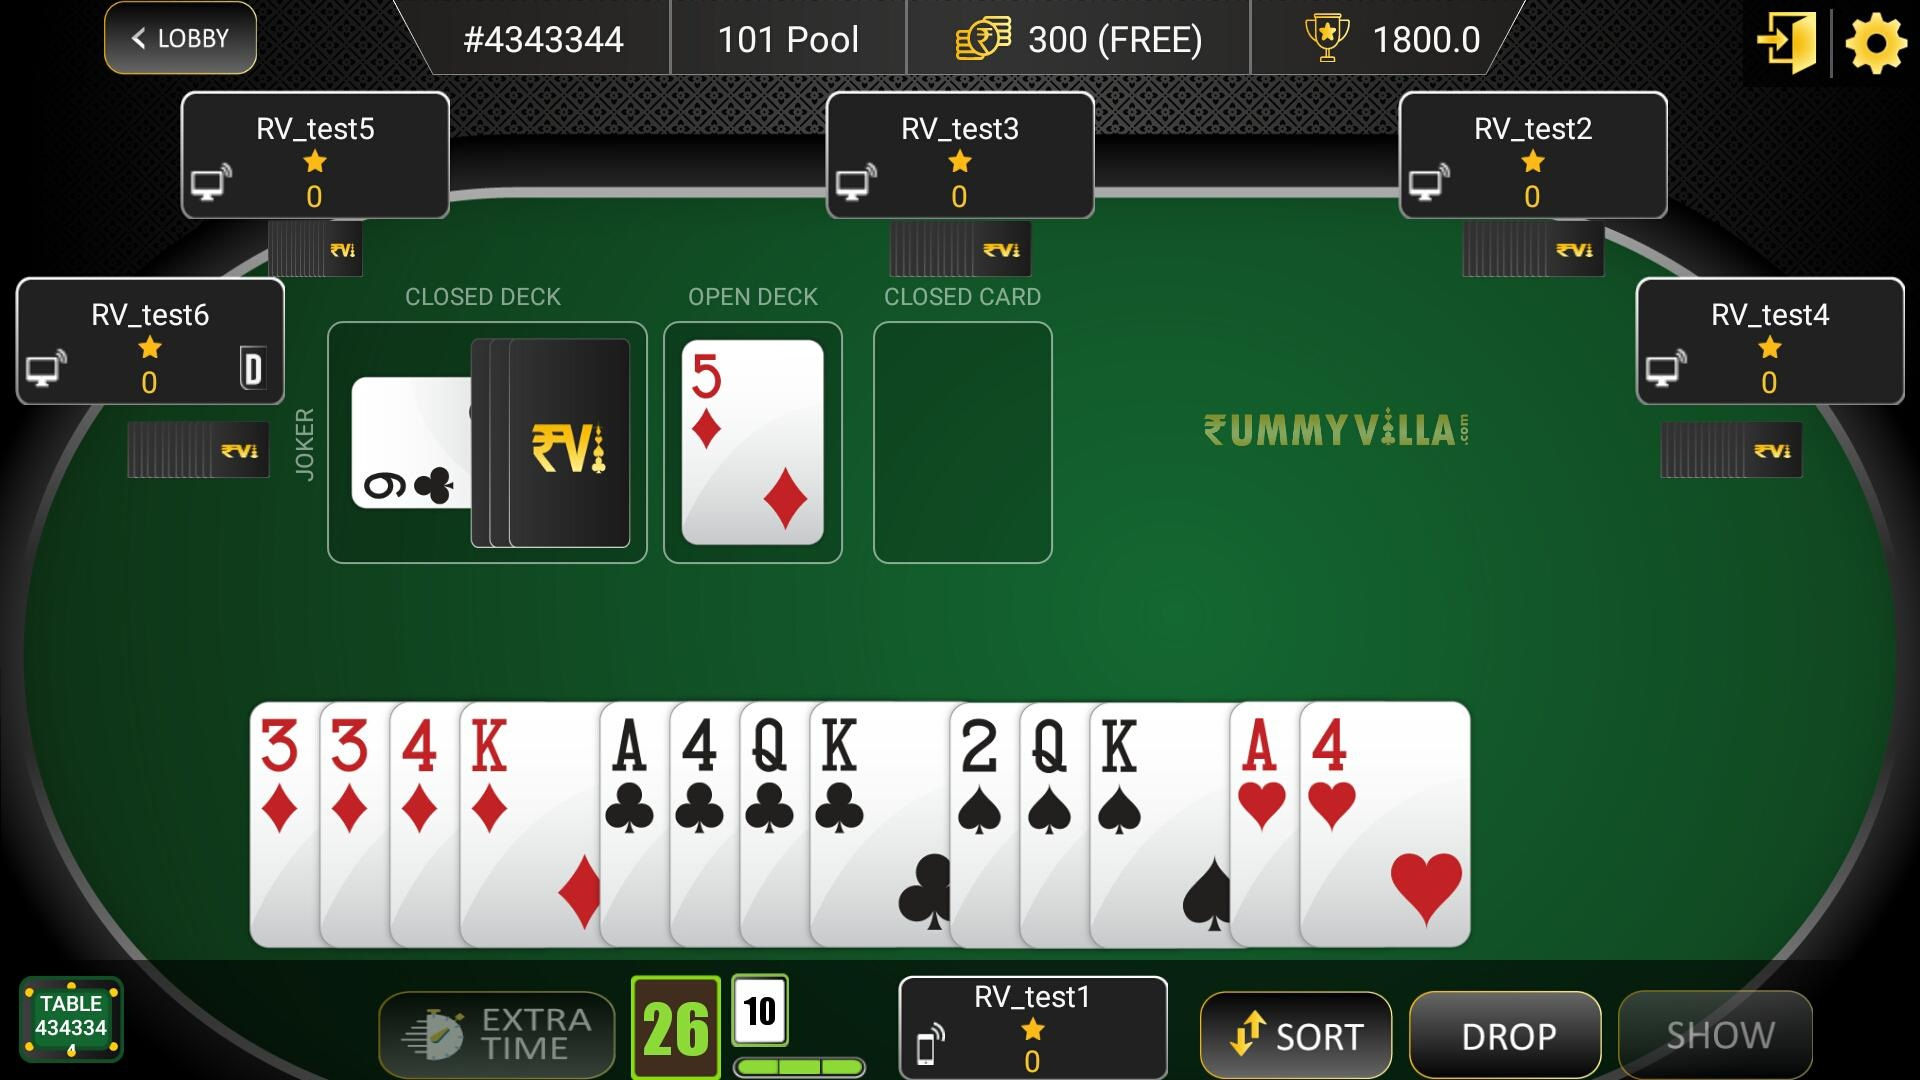 How to play quick rummy matches online and earn extra?